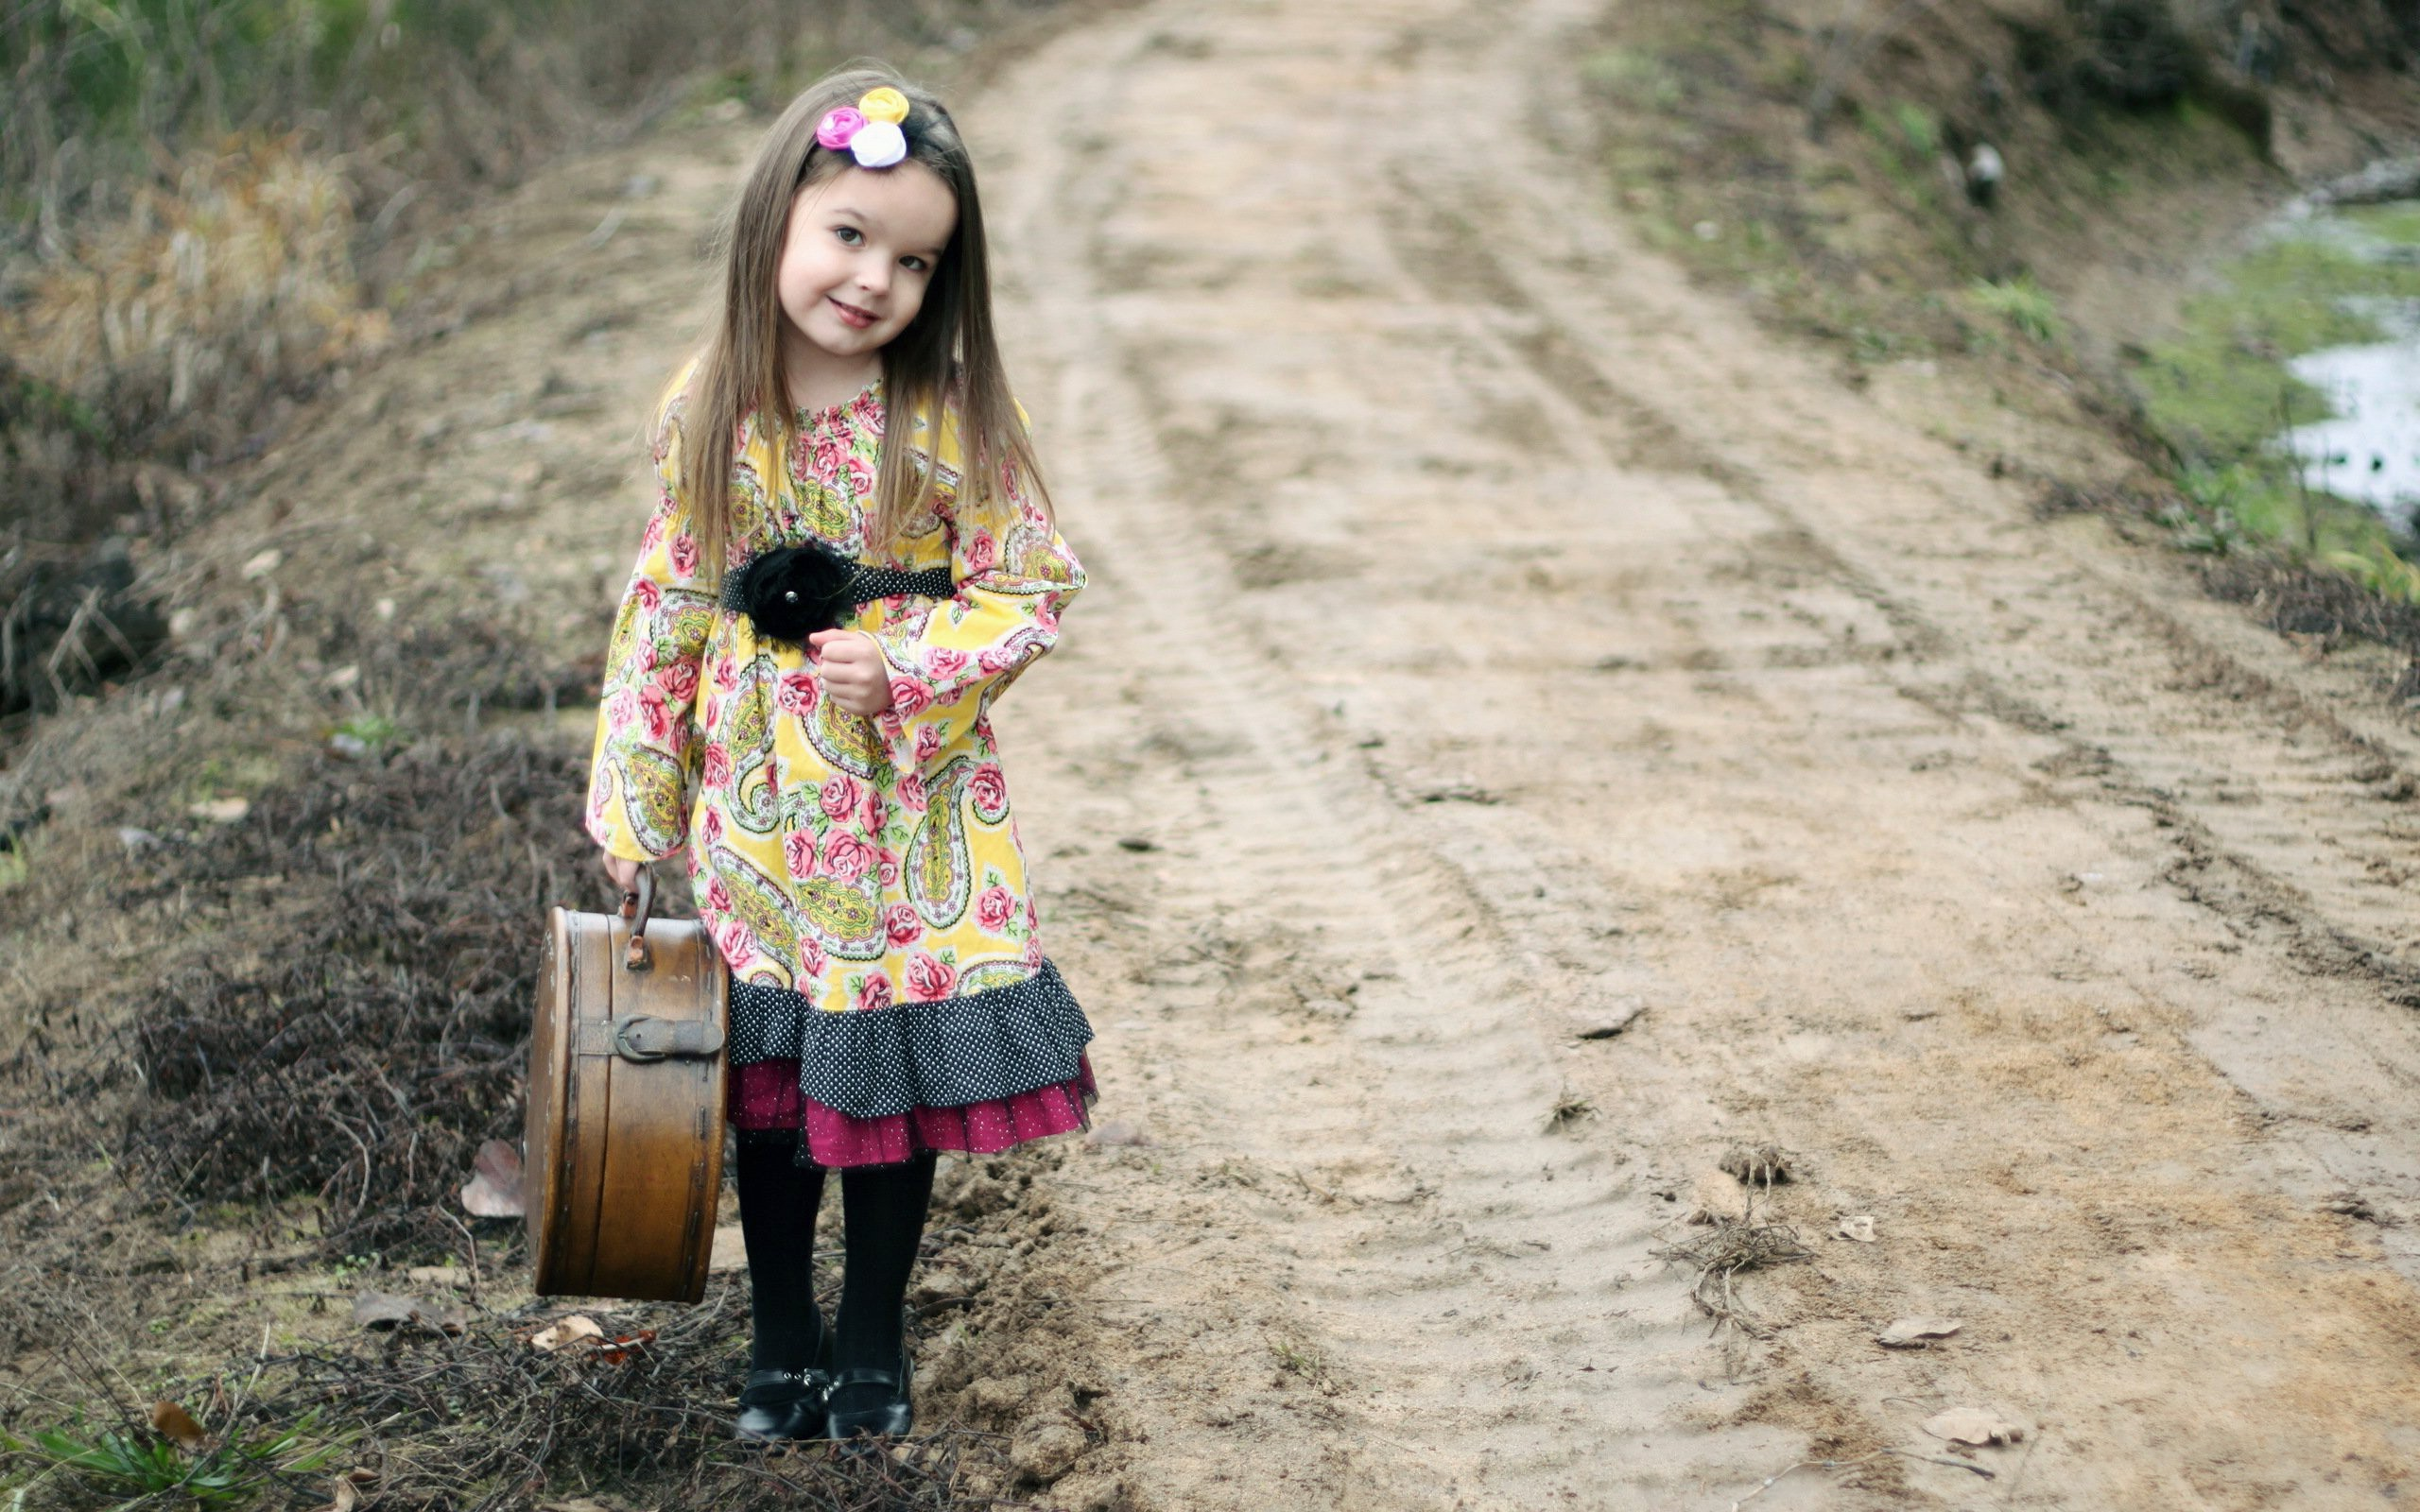 Cute Child Girl Travel HD Wallpapers   New HD Wallpapers 2560x1600